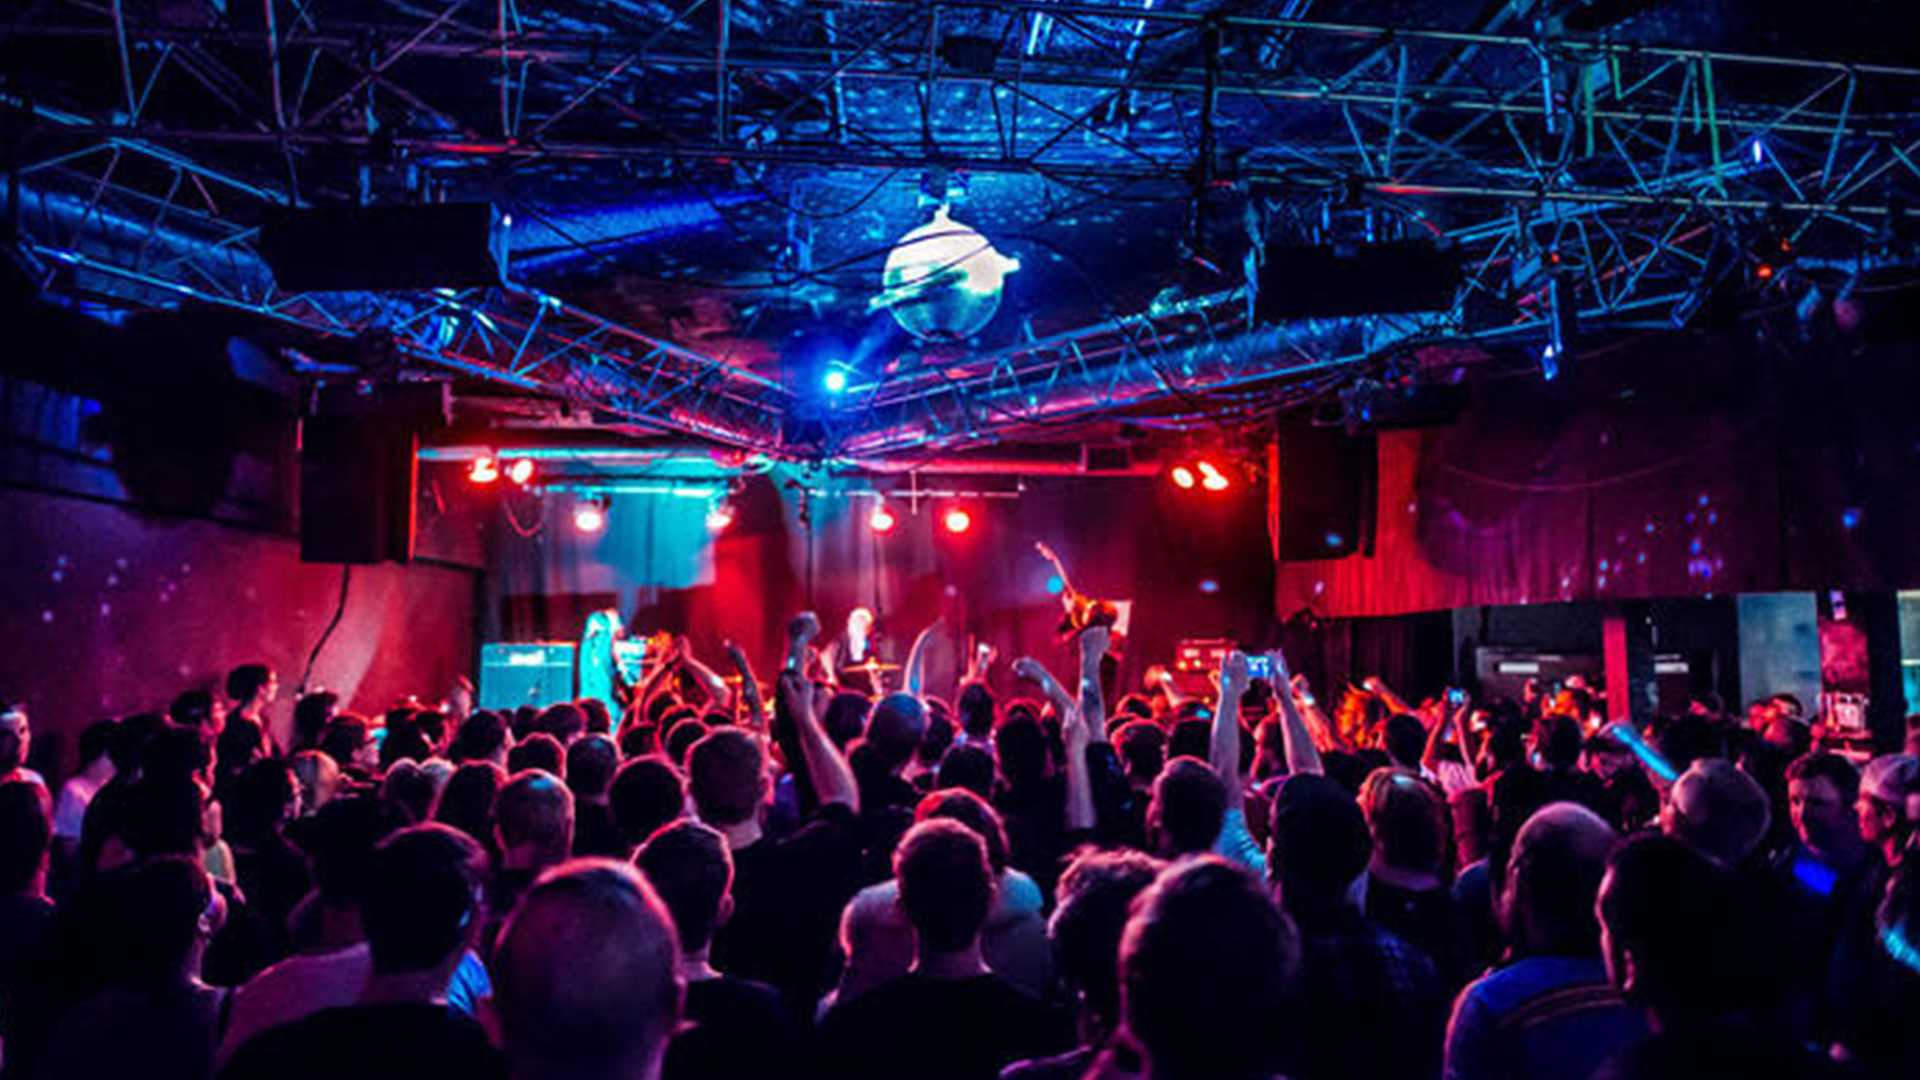 An image of a crowd at Satellite bathed in a red and blue light